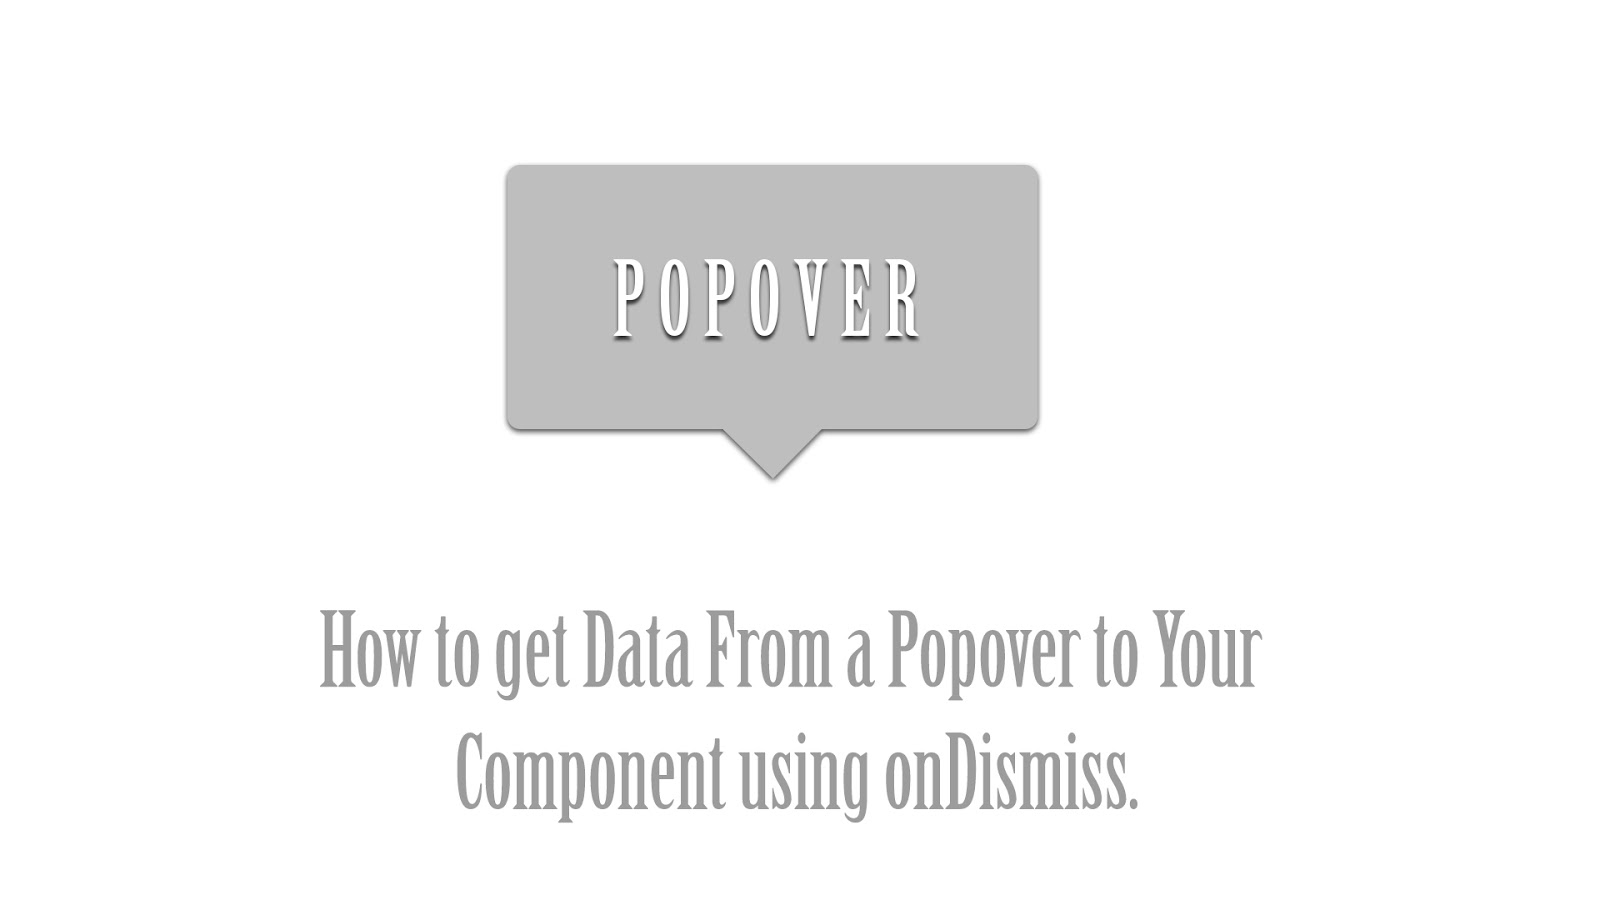 How to get Data From a Popover to Your Component using